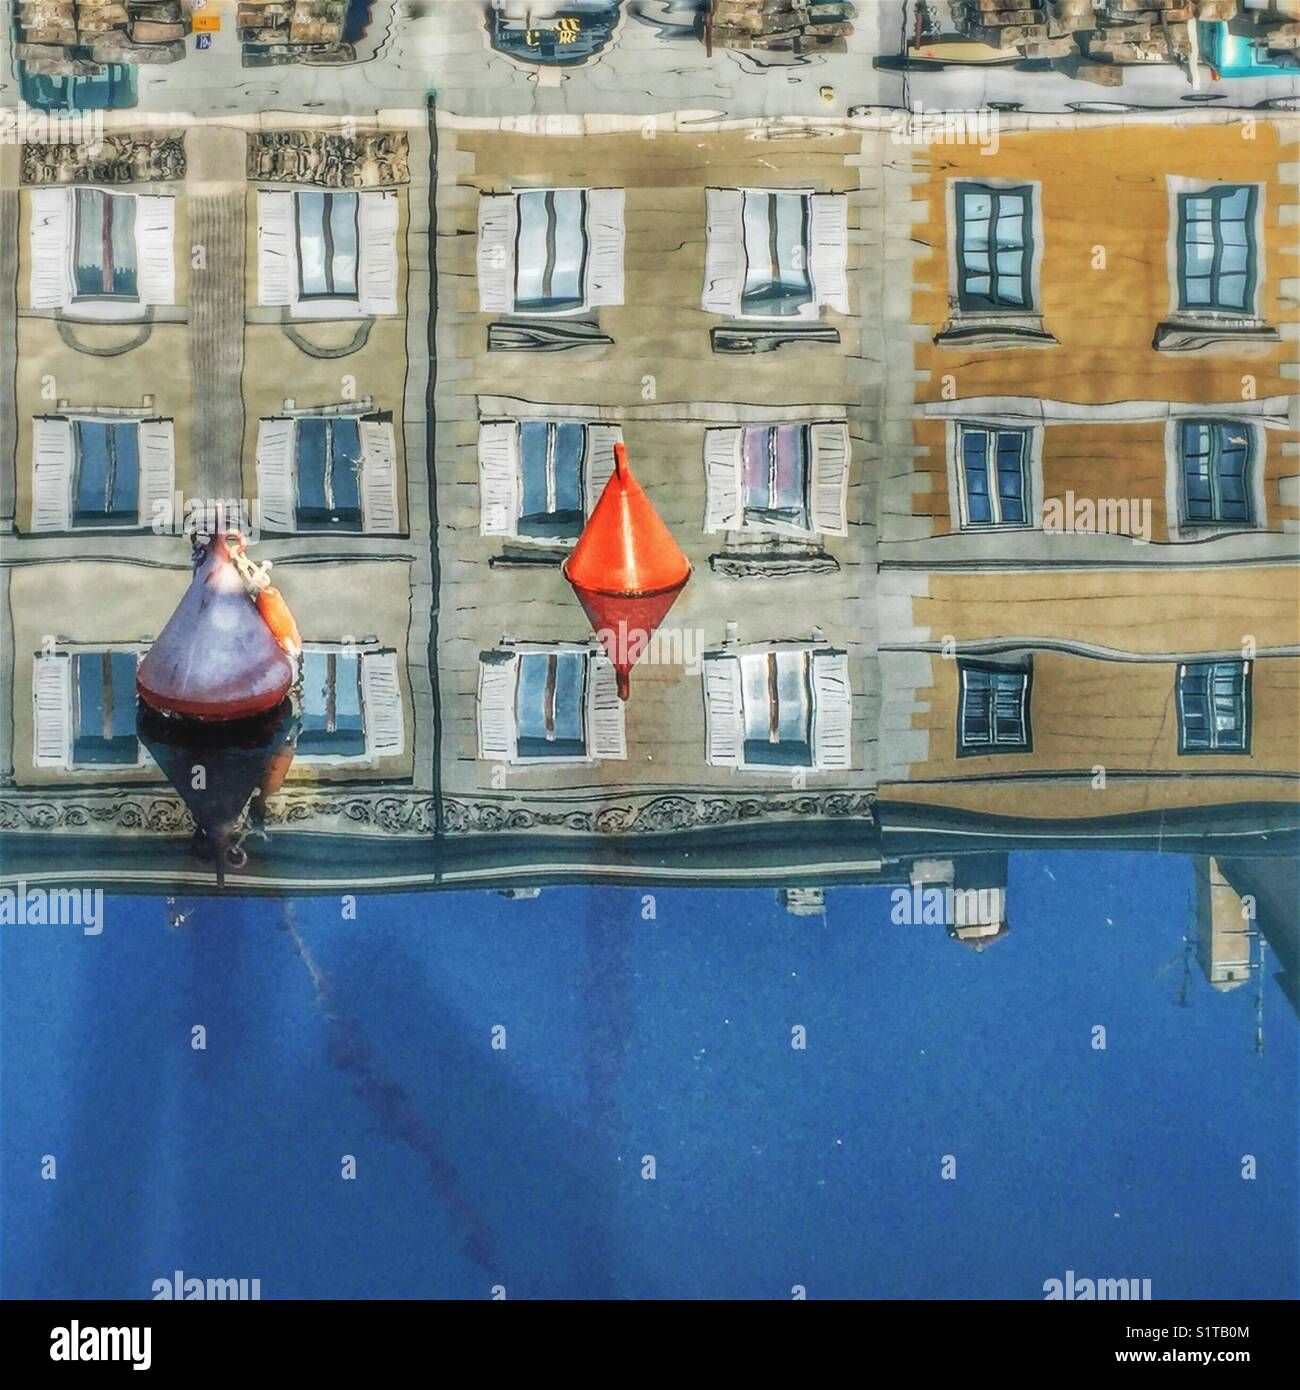 Reflections of houses in water - Canal Grande, Trieste, Italy - Stock Image